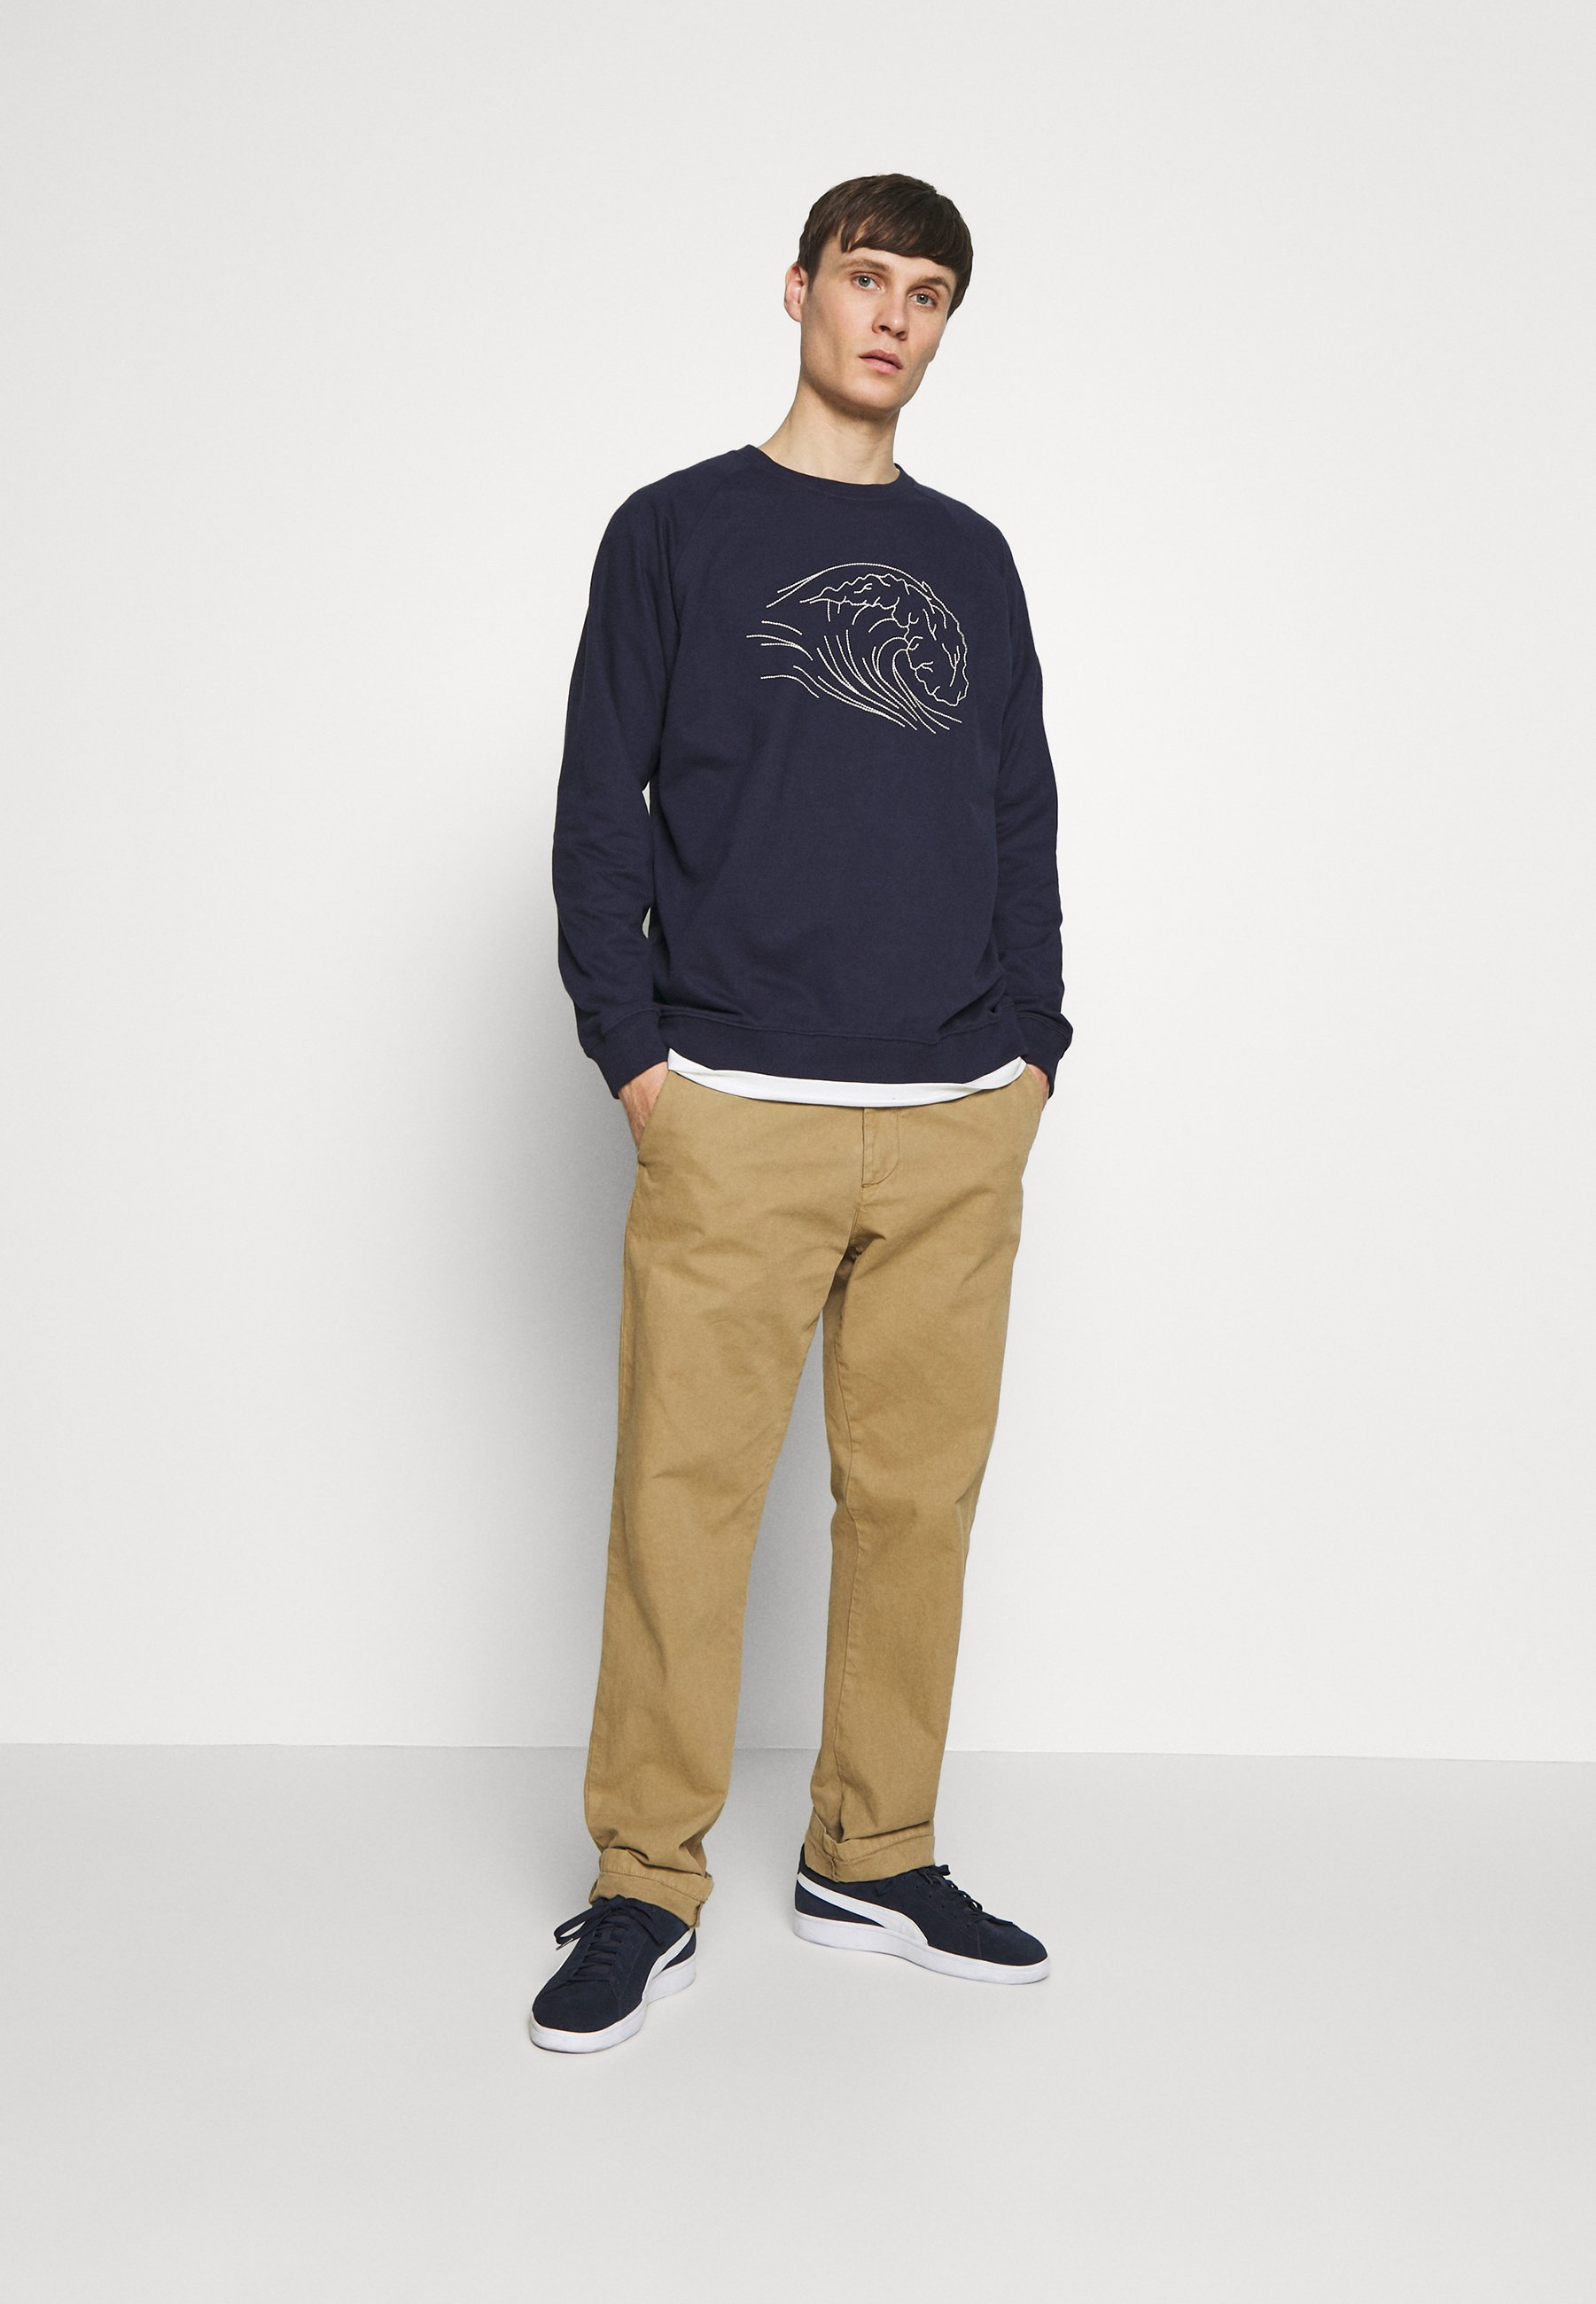 Dedicated MALMOE BICYCLE Sweatshirt off white Zalando.at